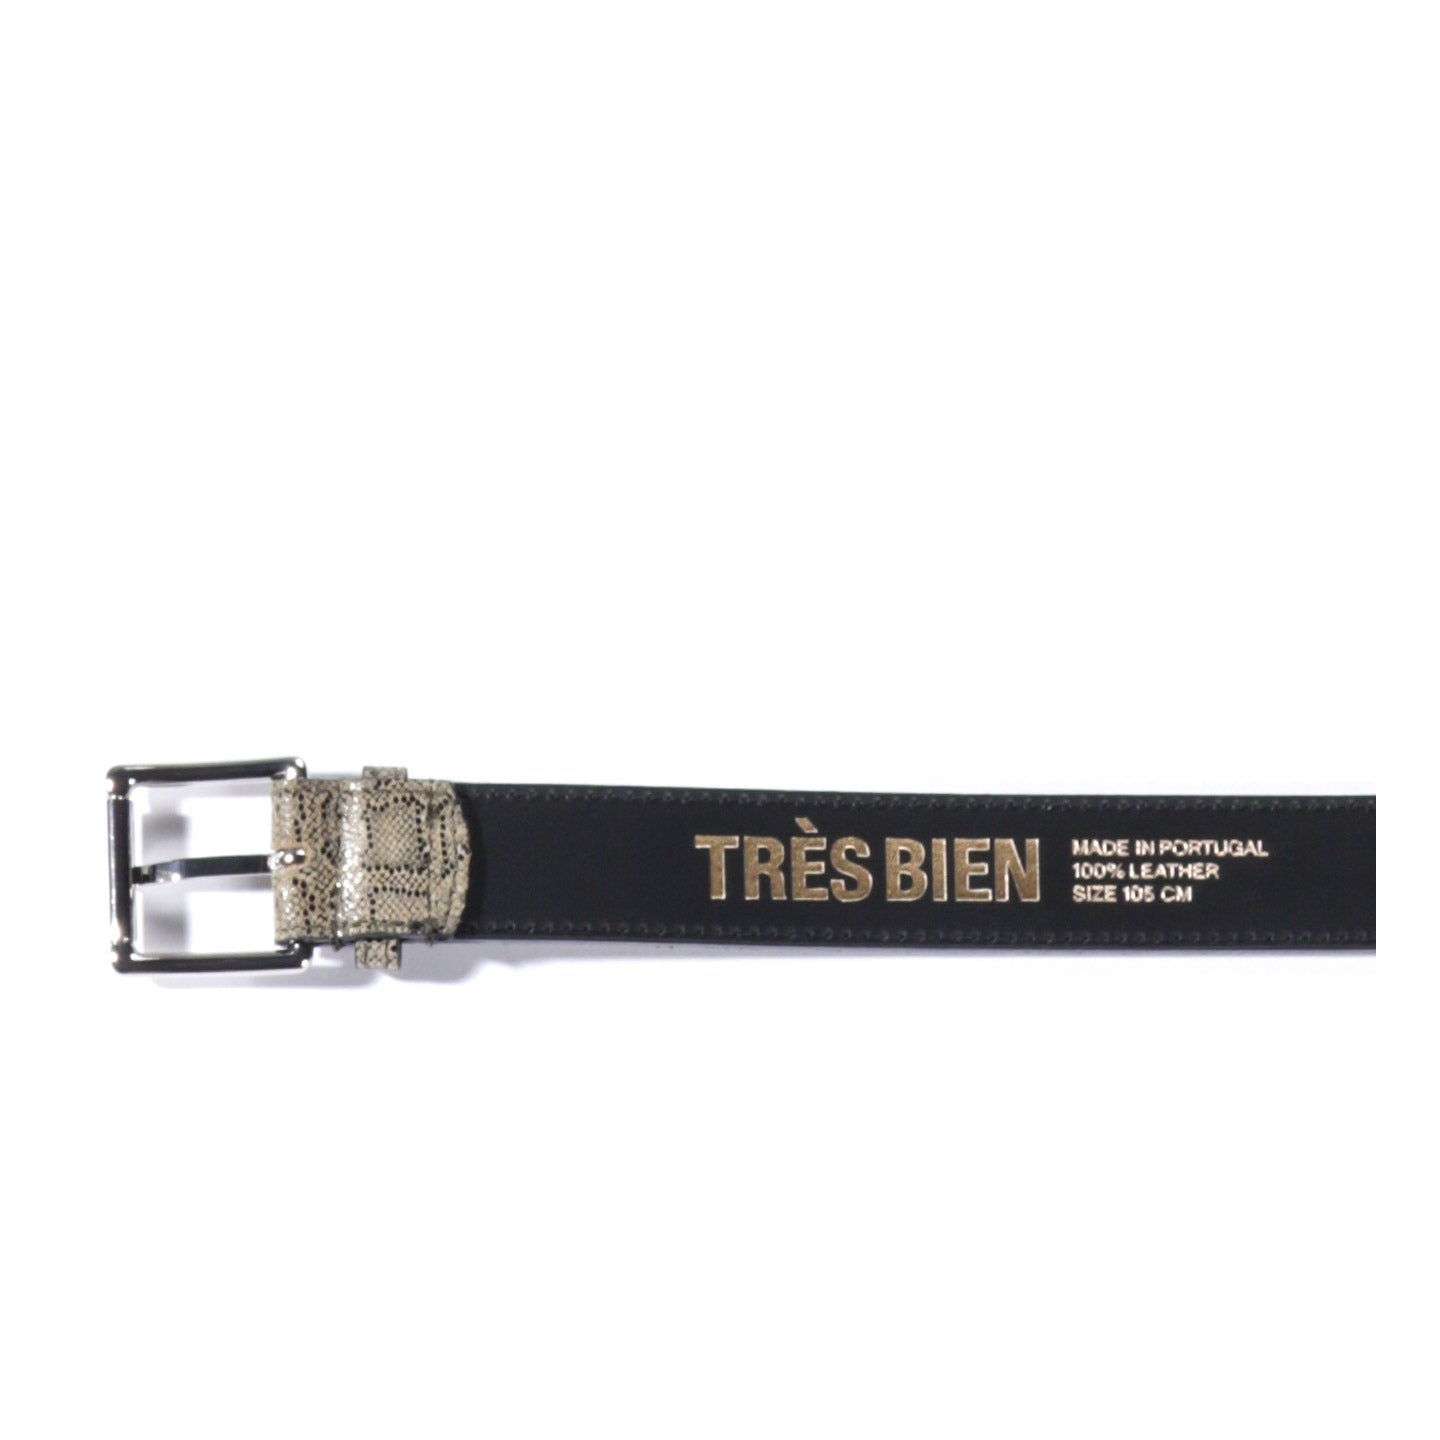 TRES BIEN LEATHER BELT BEIGE SNAKE